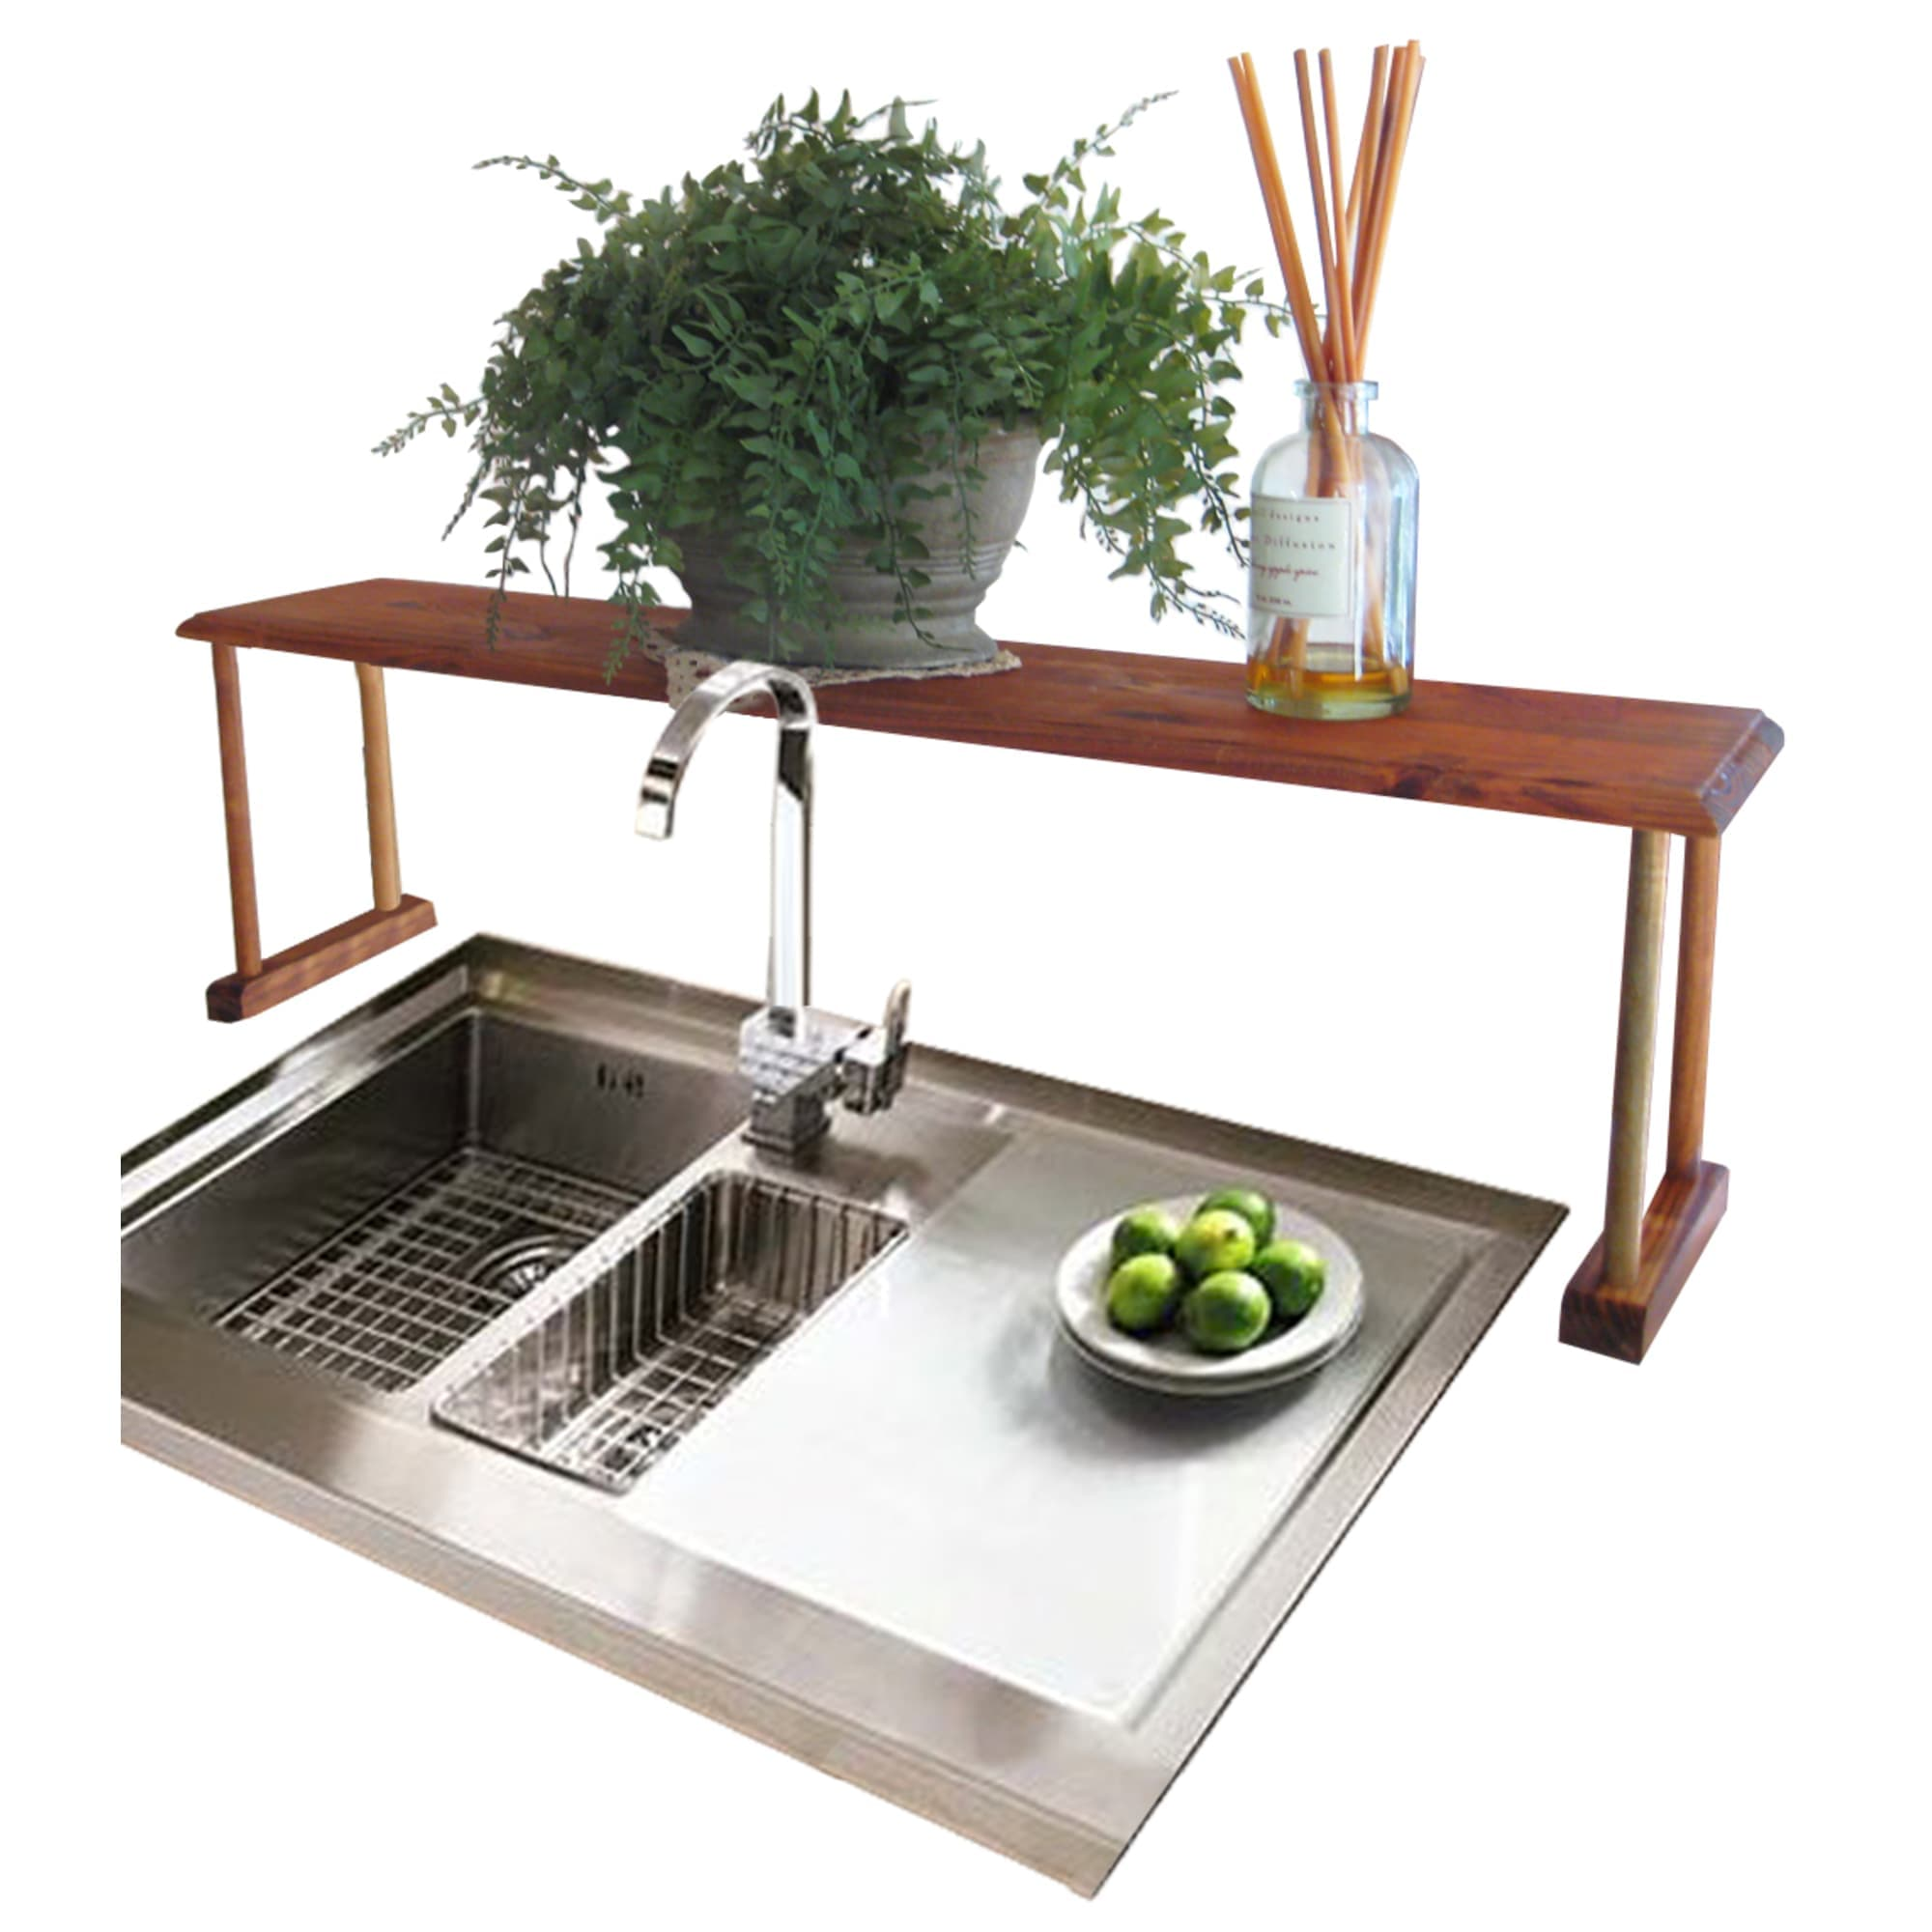 Space-Saving Pine Wood Over the Sink Multi-Use Shelf